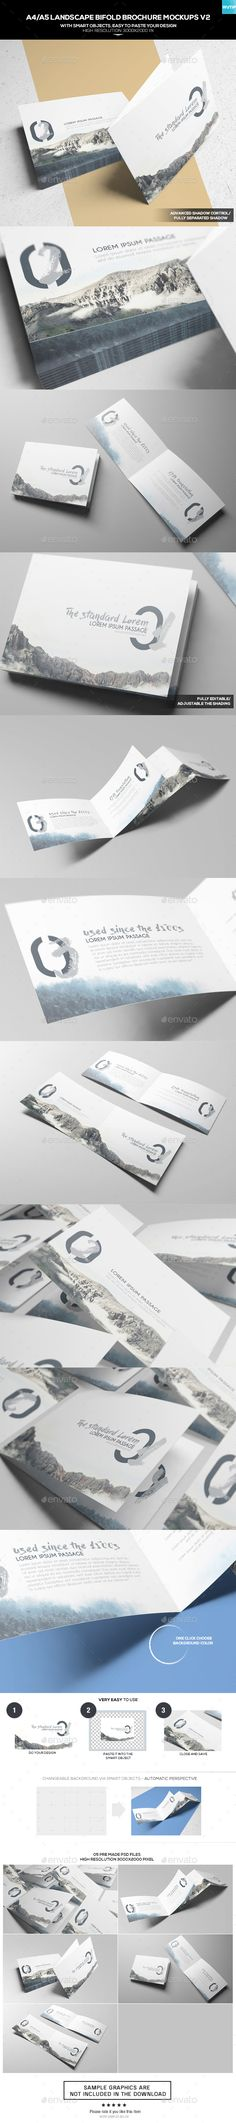 A4/ A5 Landscape Bifold Brochure Mockups V2 — Photoshop PSD #template #a4 • Available here → https://graphicriver.net/item/a4-a5-landscape-bifold-brochure-mockups-v2/17845752?ref=pxcr